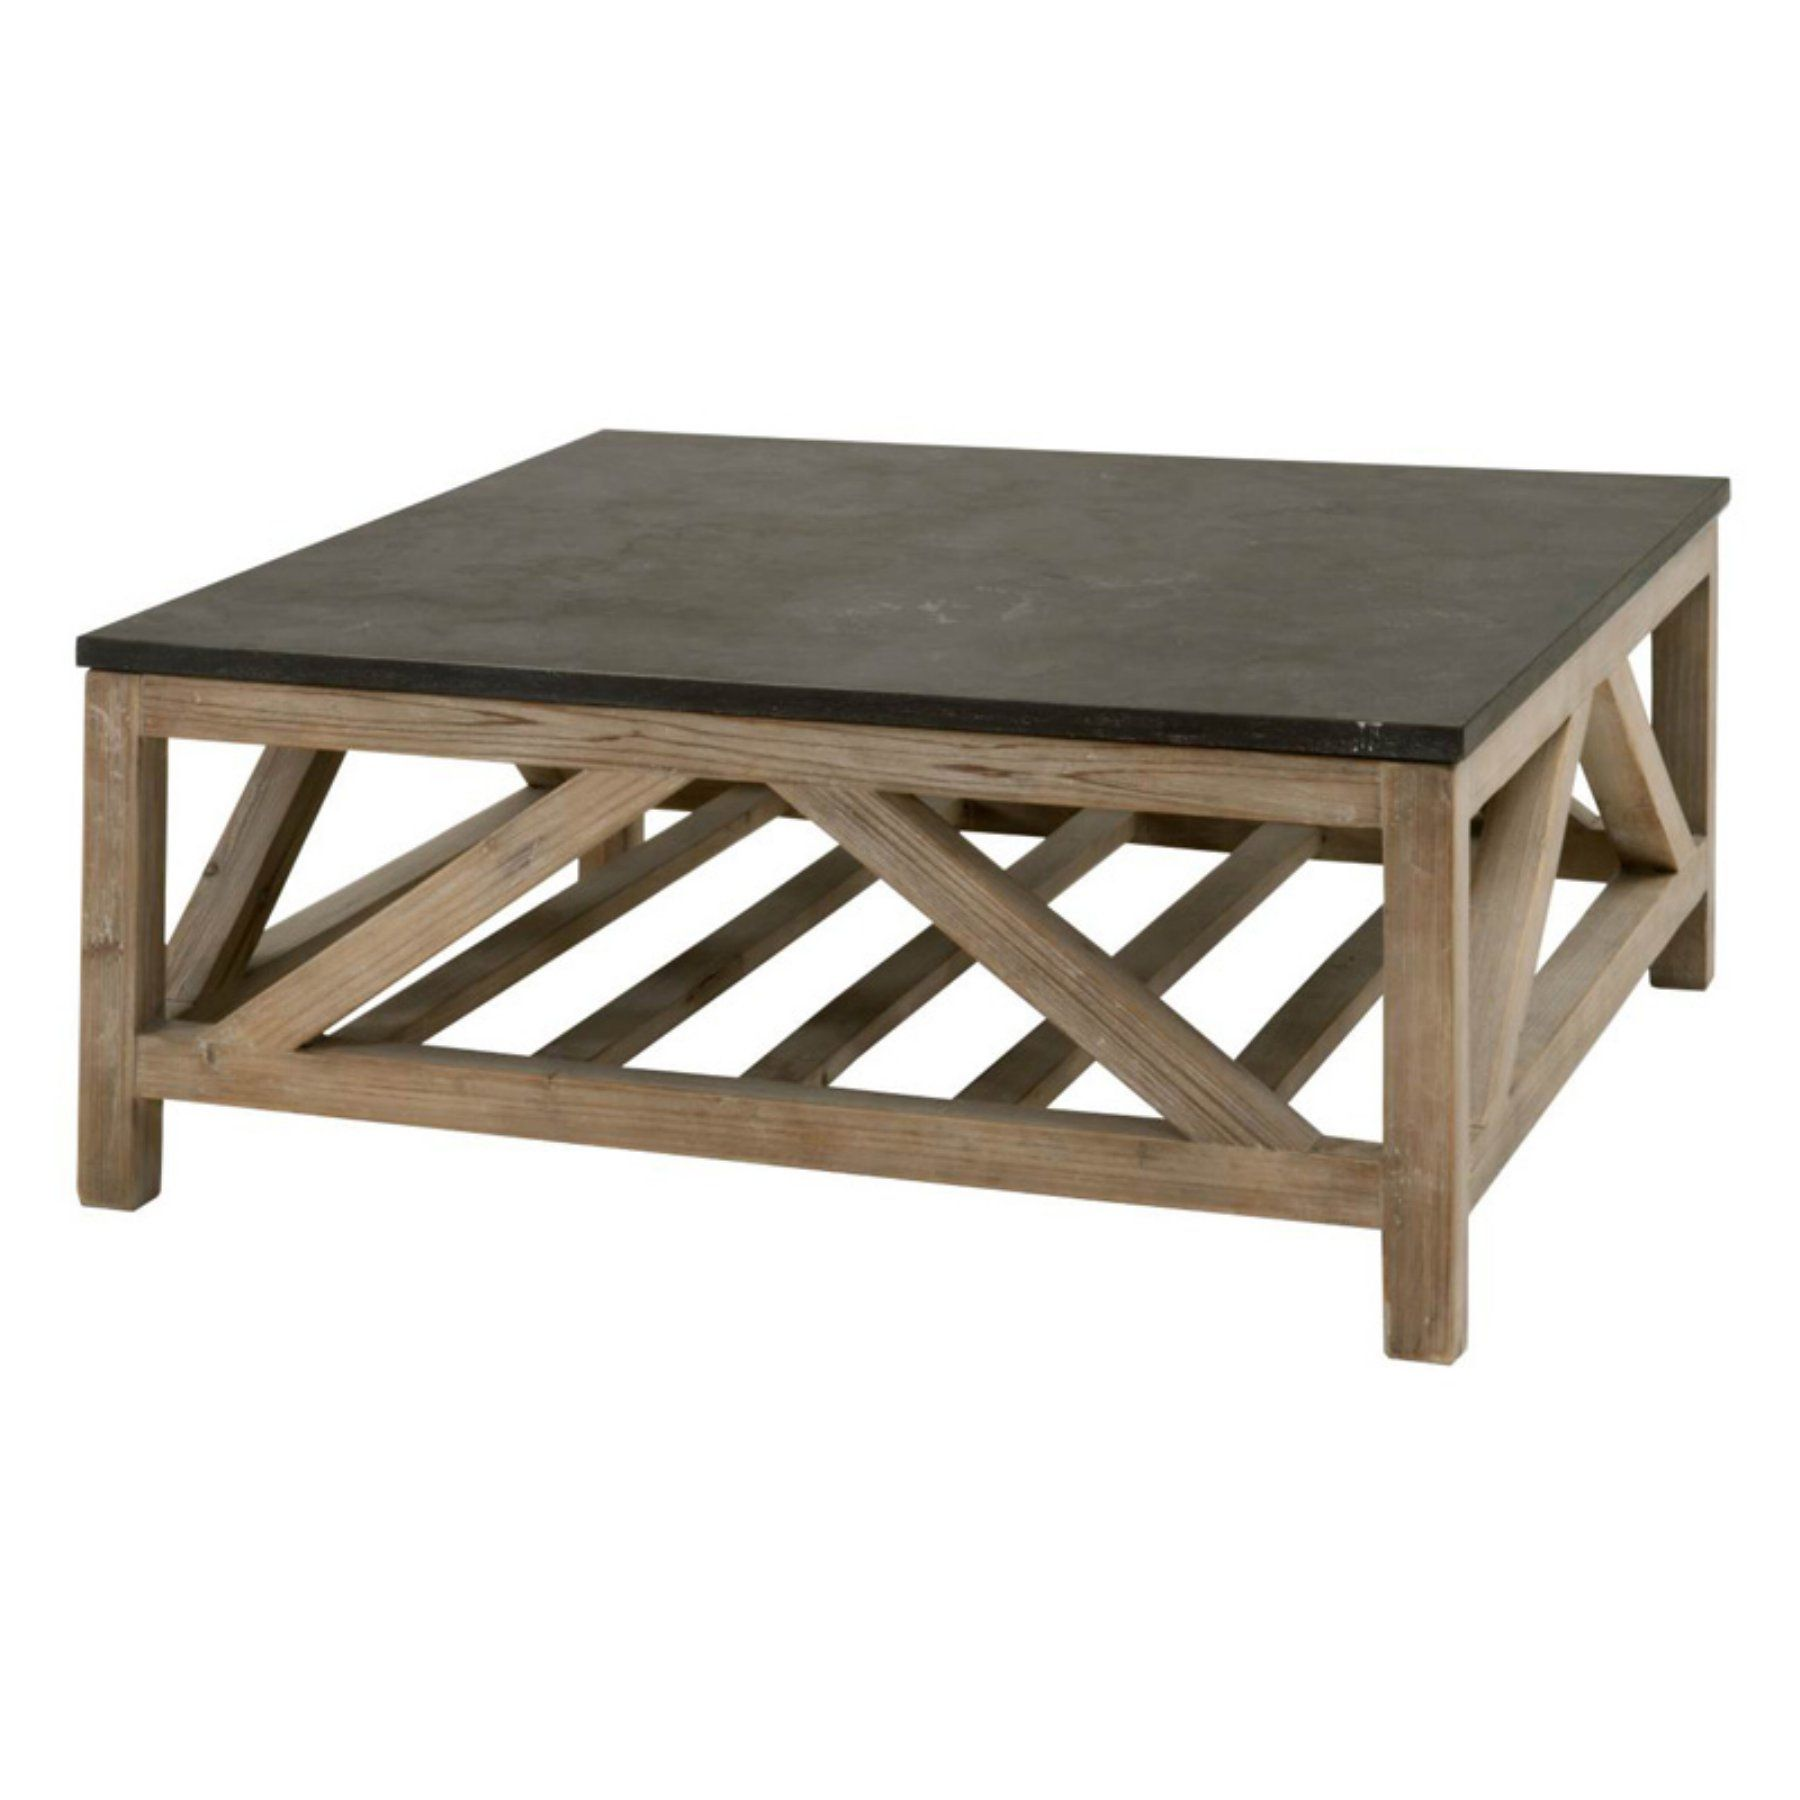 Orient Express Furniture Blue Stone Square Coffee Table 8022sq